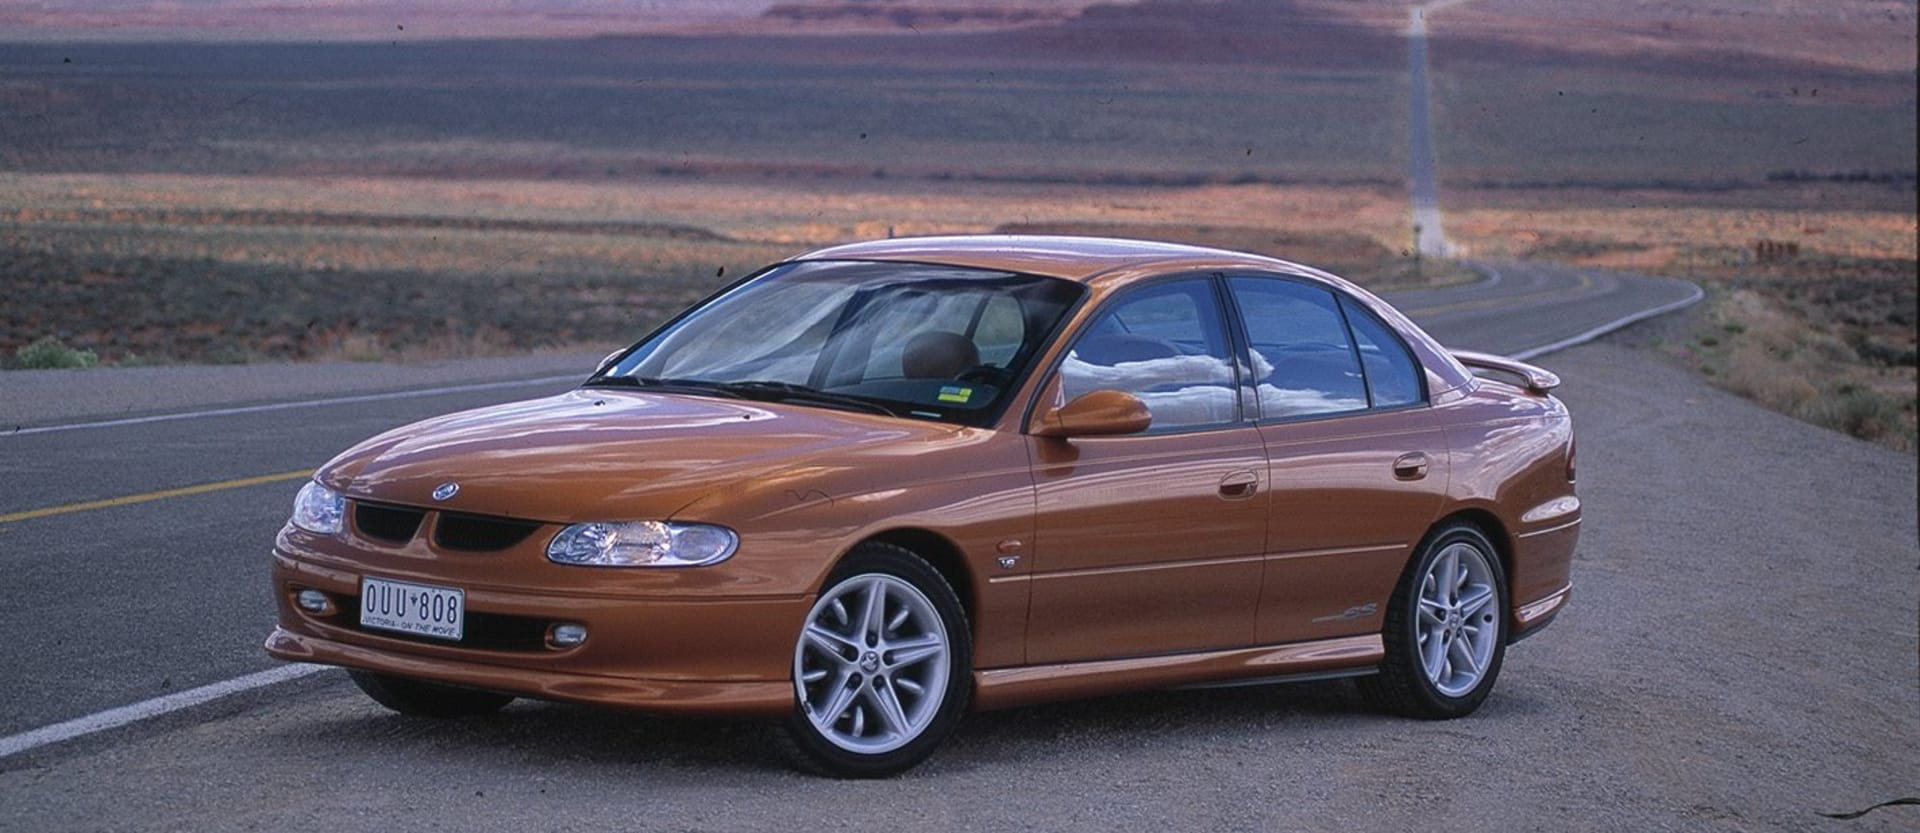 Archive: Driving a left-hand drive Holden VT Commodore SS across America